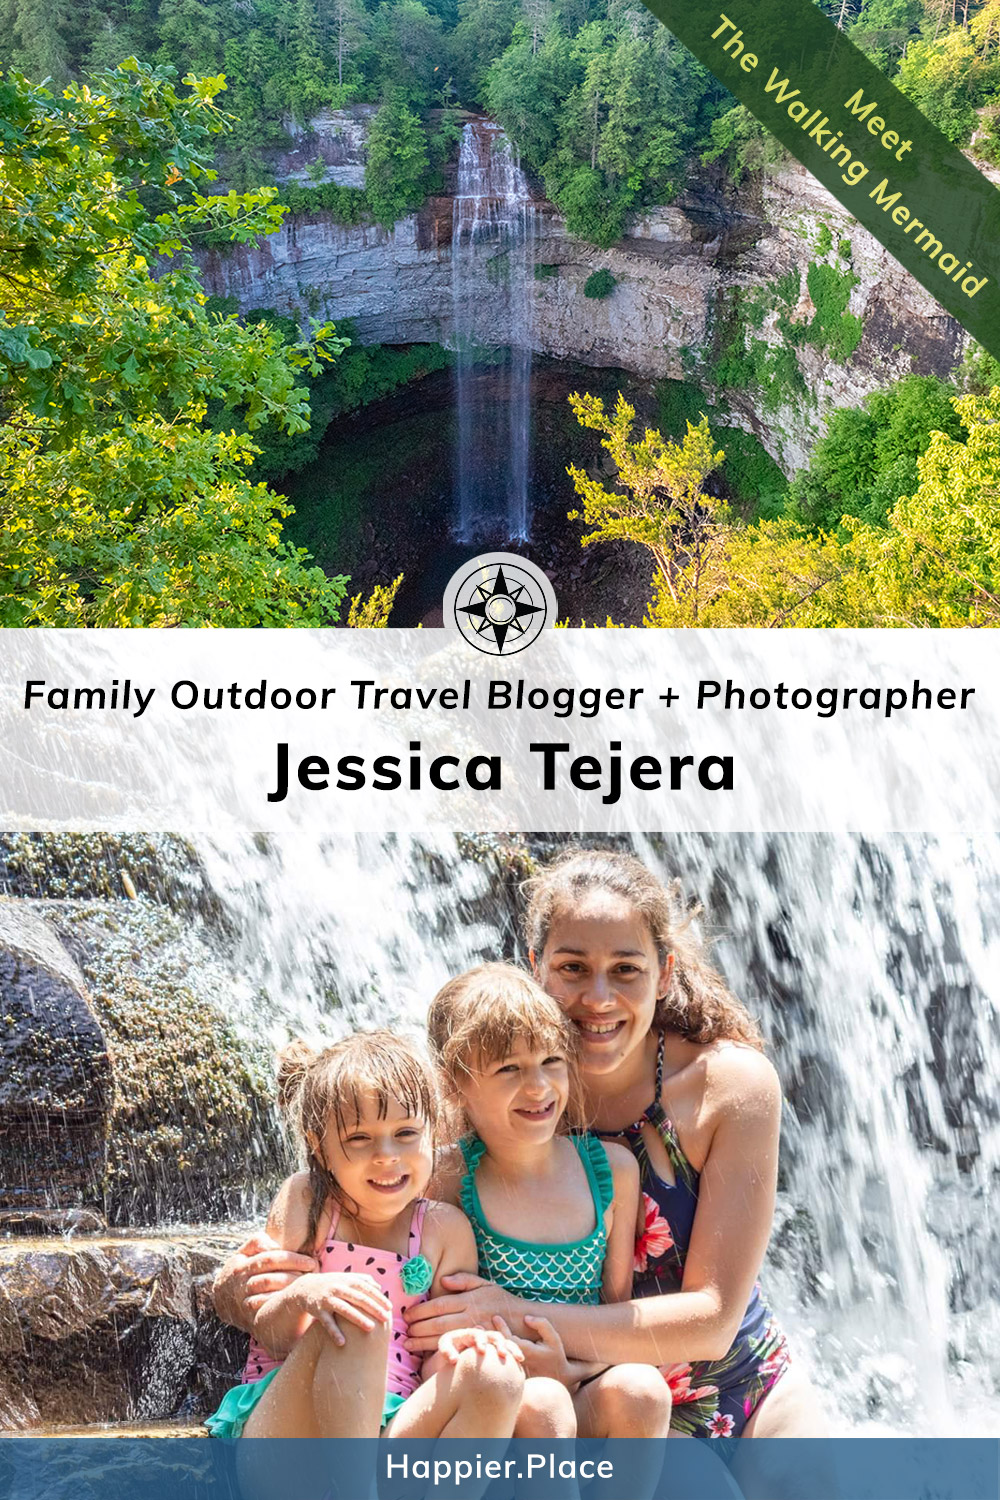 Jessica Tejera: Family Outdoor Travel Blogger and Photographer (Tennessee)